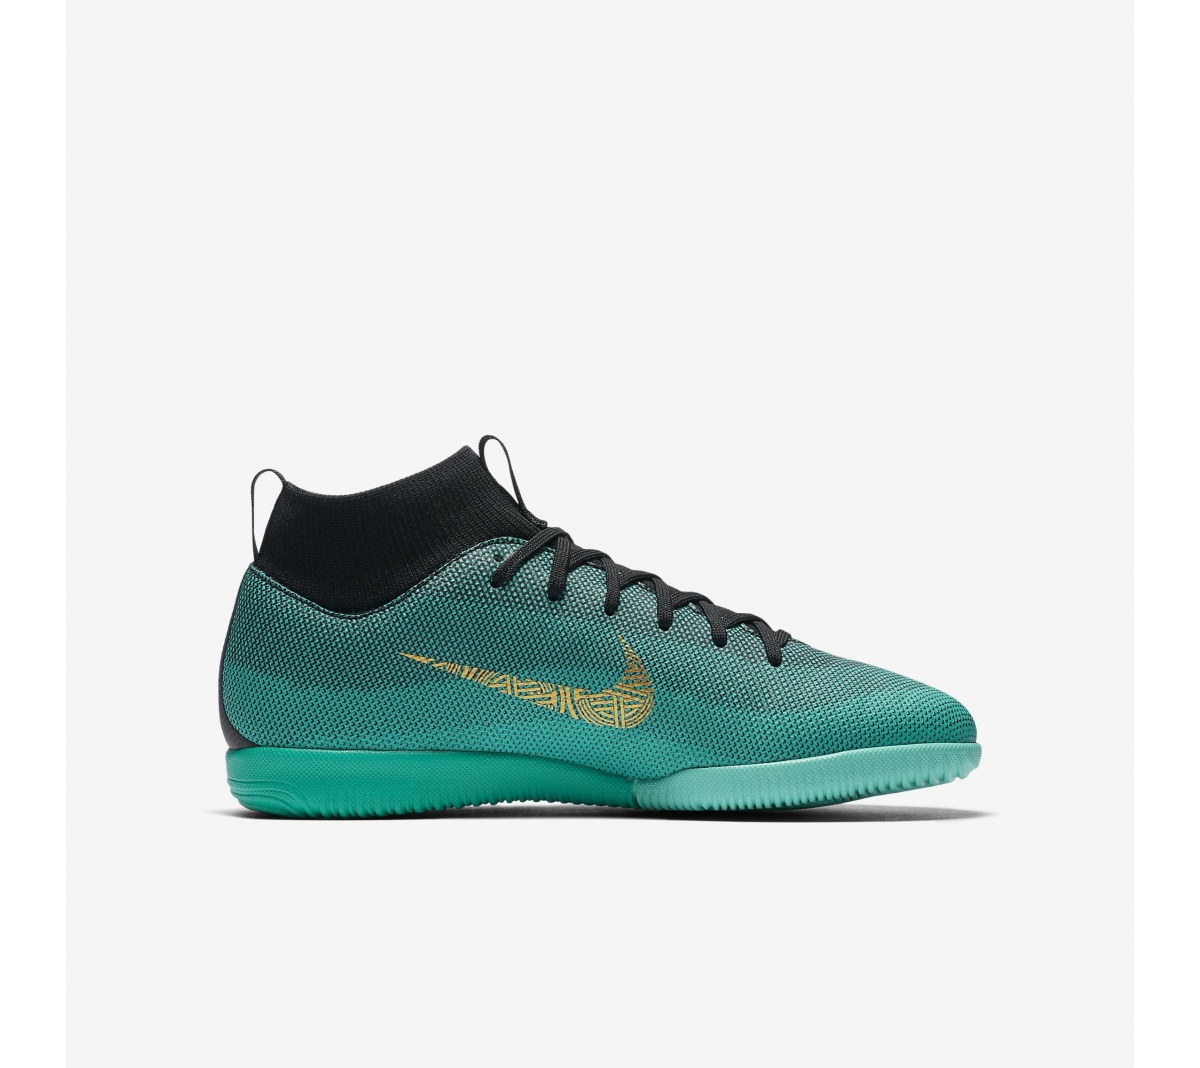 21b20d599ab Chuteira Nike Superfly 6 Academy CR7 Infantil IC - Mundo do Futebol